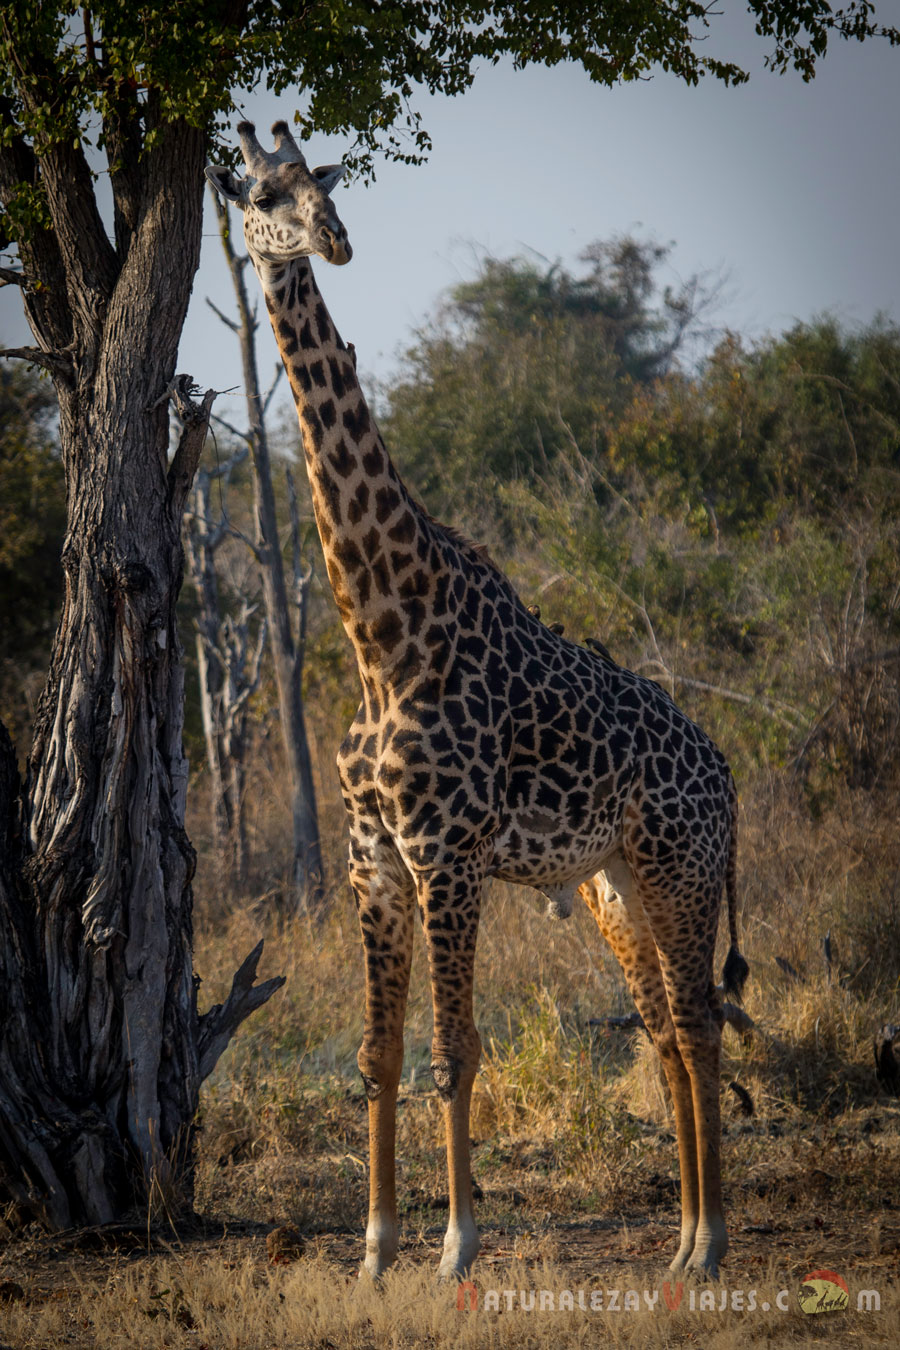 Jirafa en South Luangwa, Zambia